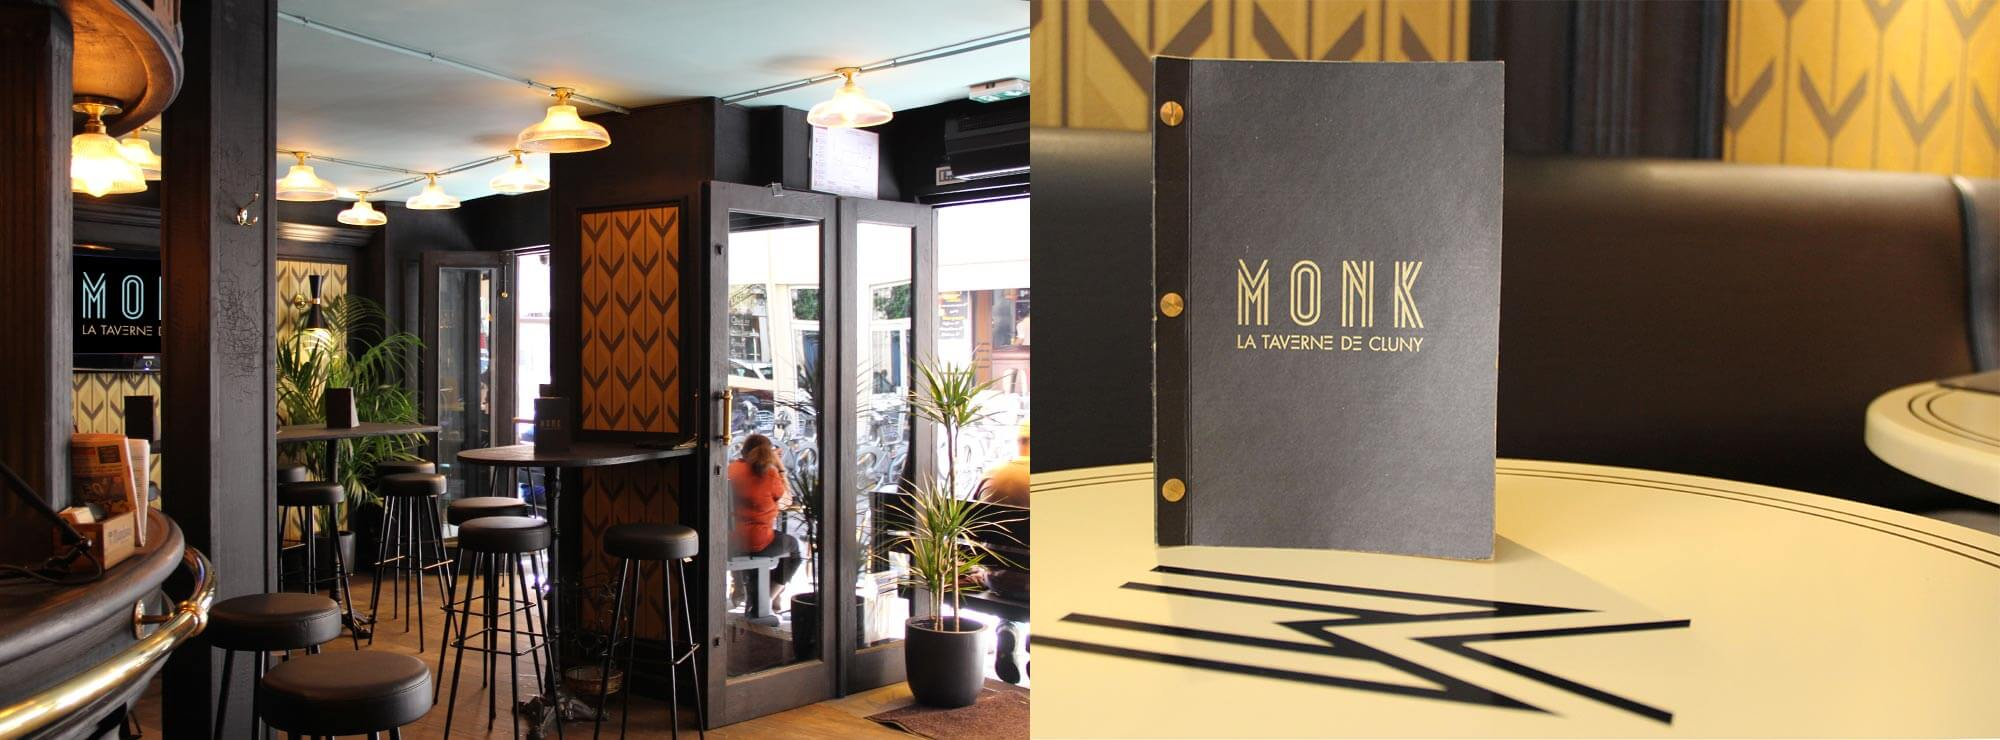 11.monk carte terrasse bar table.jpg